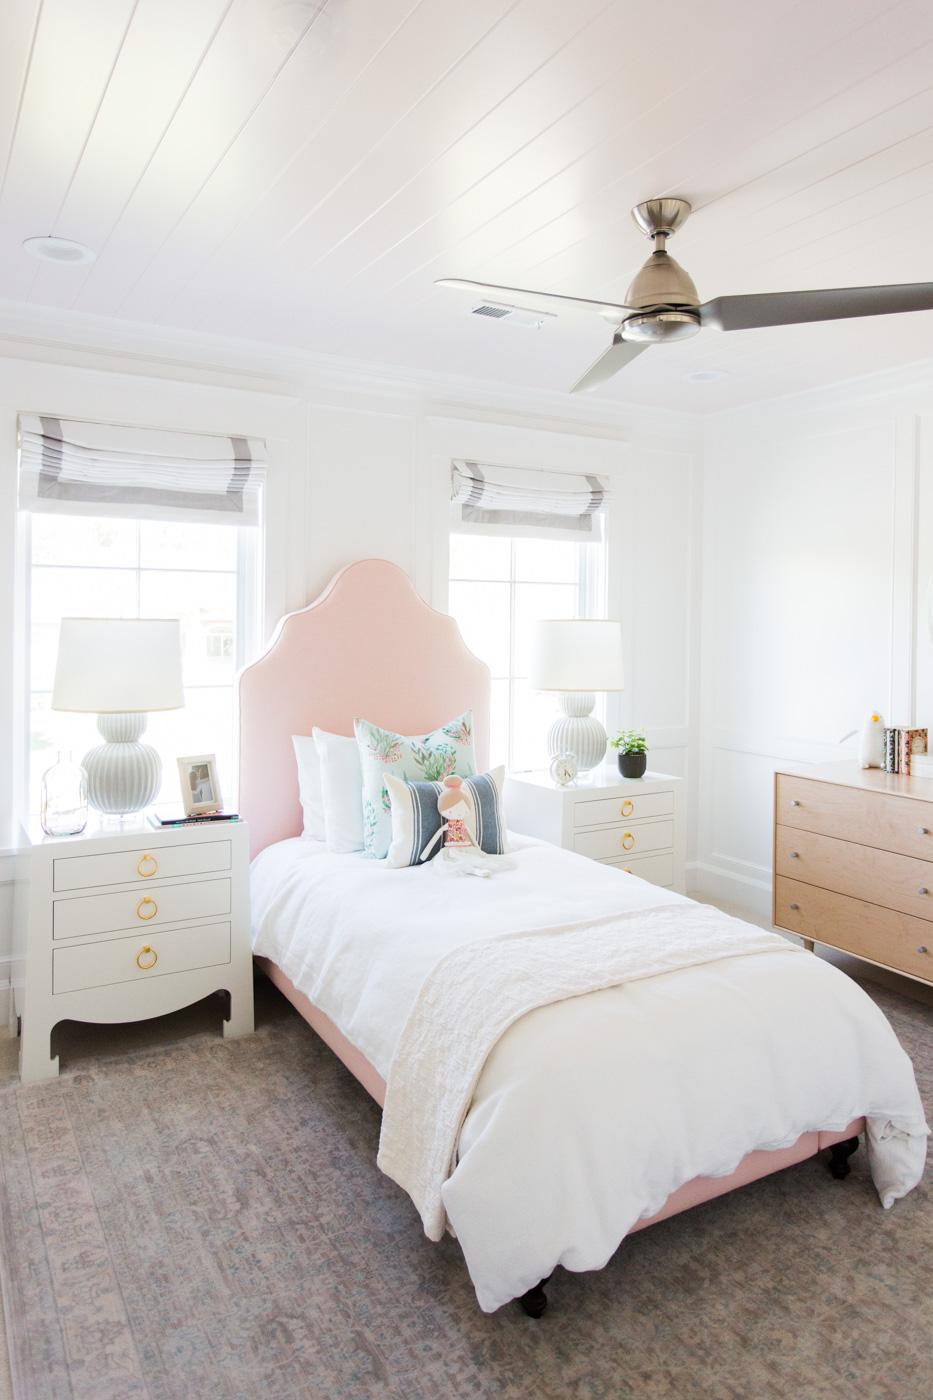 White twin bed on large area rug